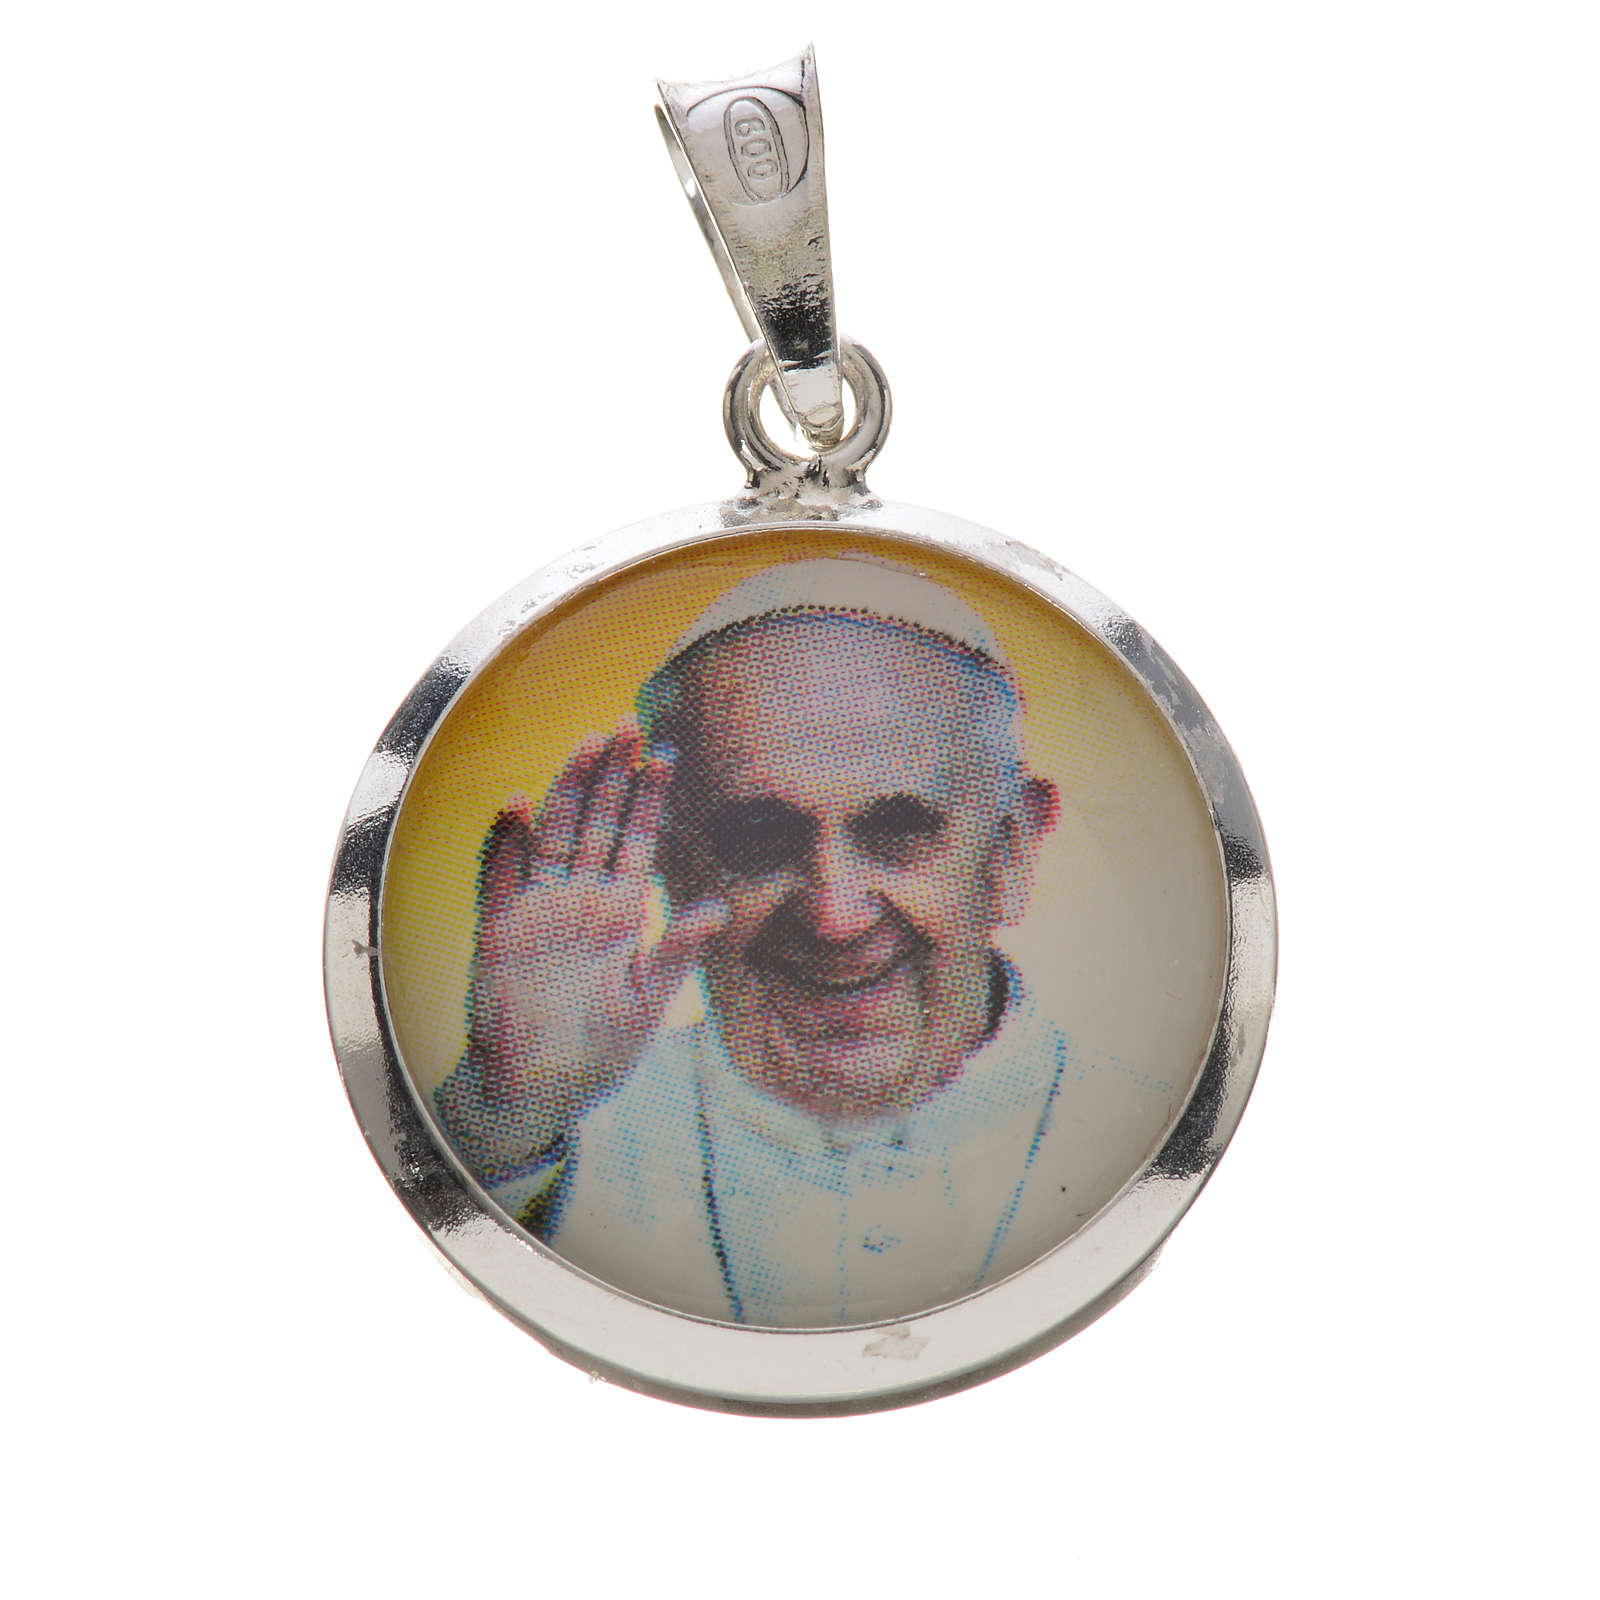 Medal with Pope Francis image in 800 silver 4